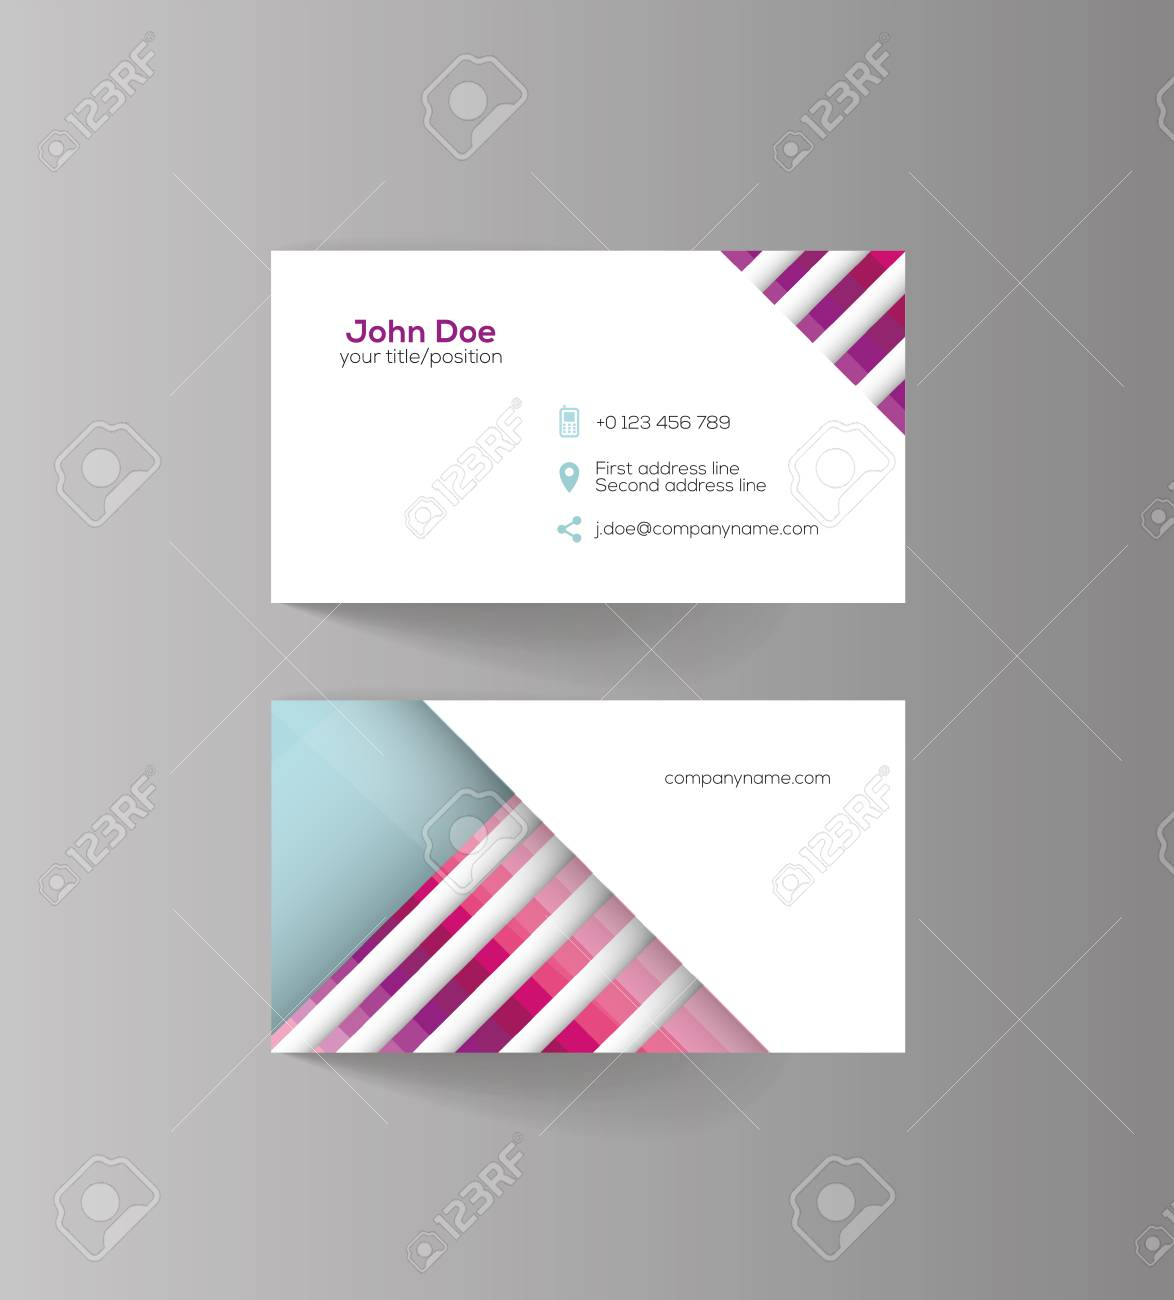 Business Card Design Idea For Your Company Royalty Free Cliparts ...